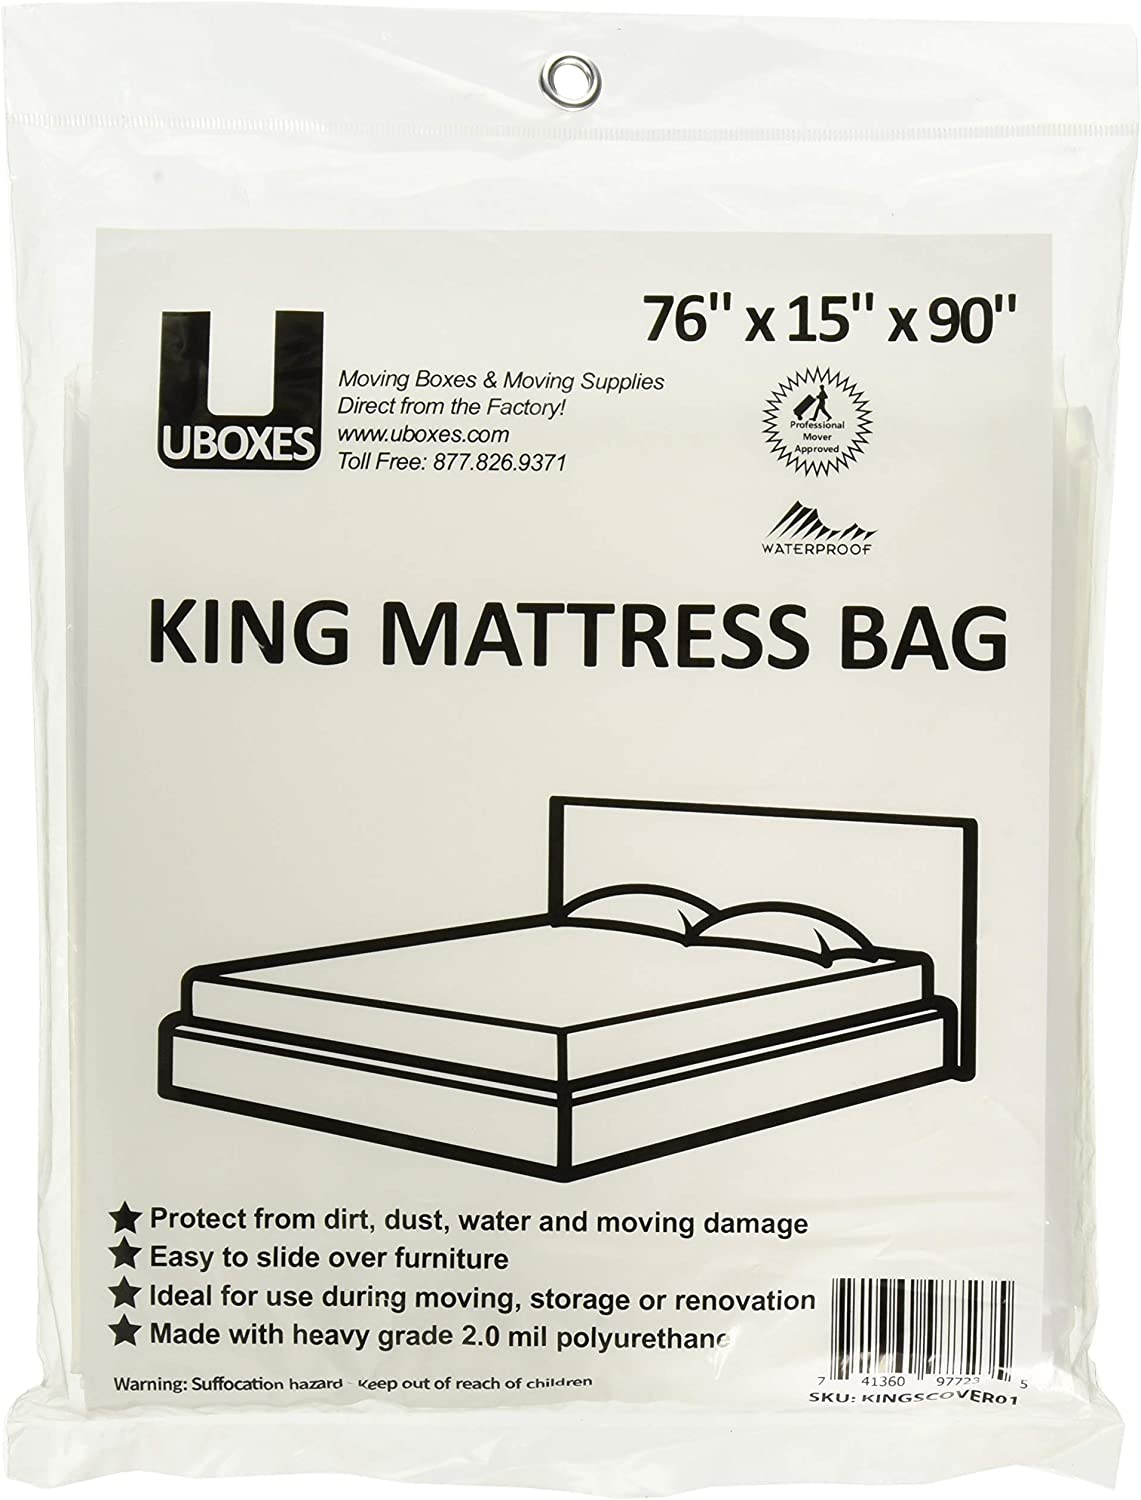 Uboxes King Mattress Poly Covers, 76 x 15 x 90 in, 1 Pack (KINGSCOVER01)